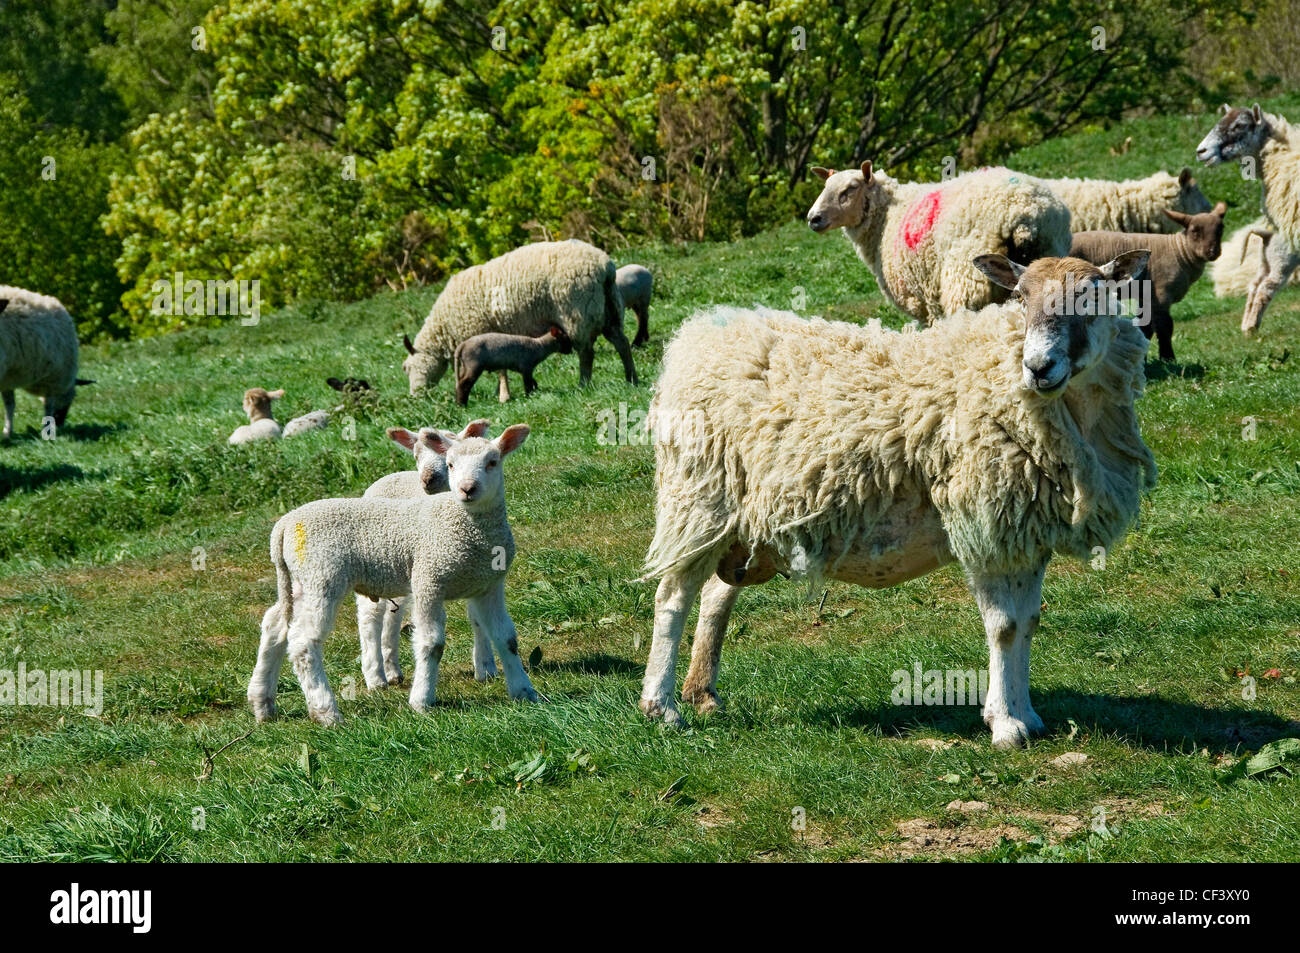 Ewes and lambs in a field in spring. - Stock Image